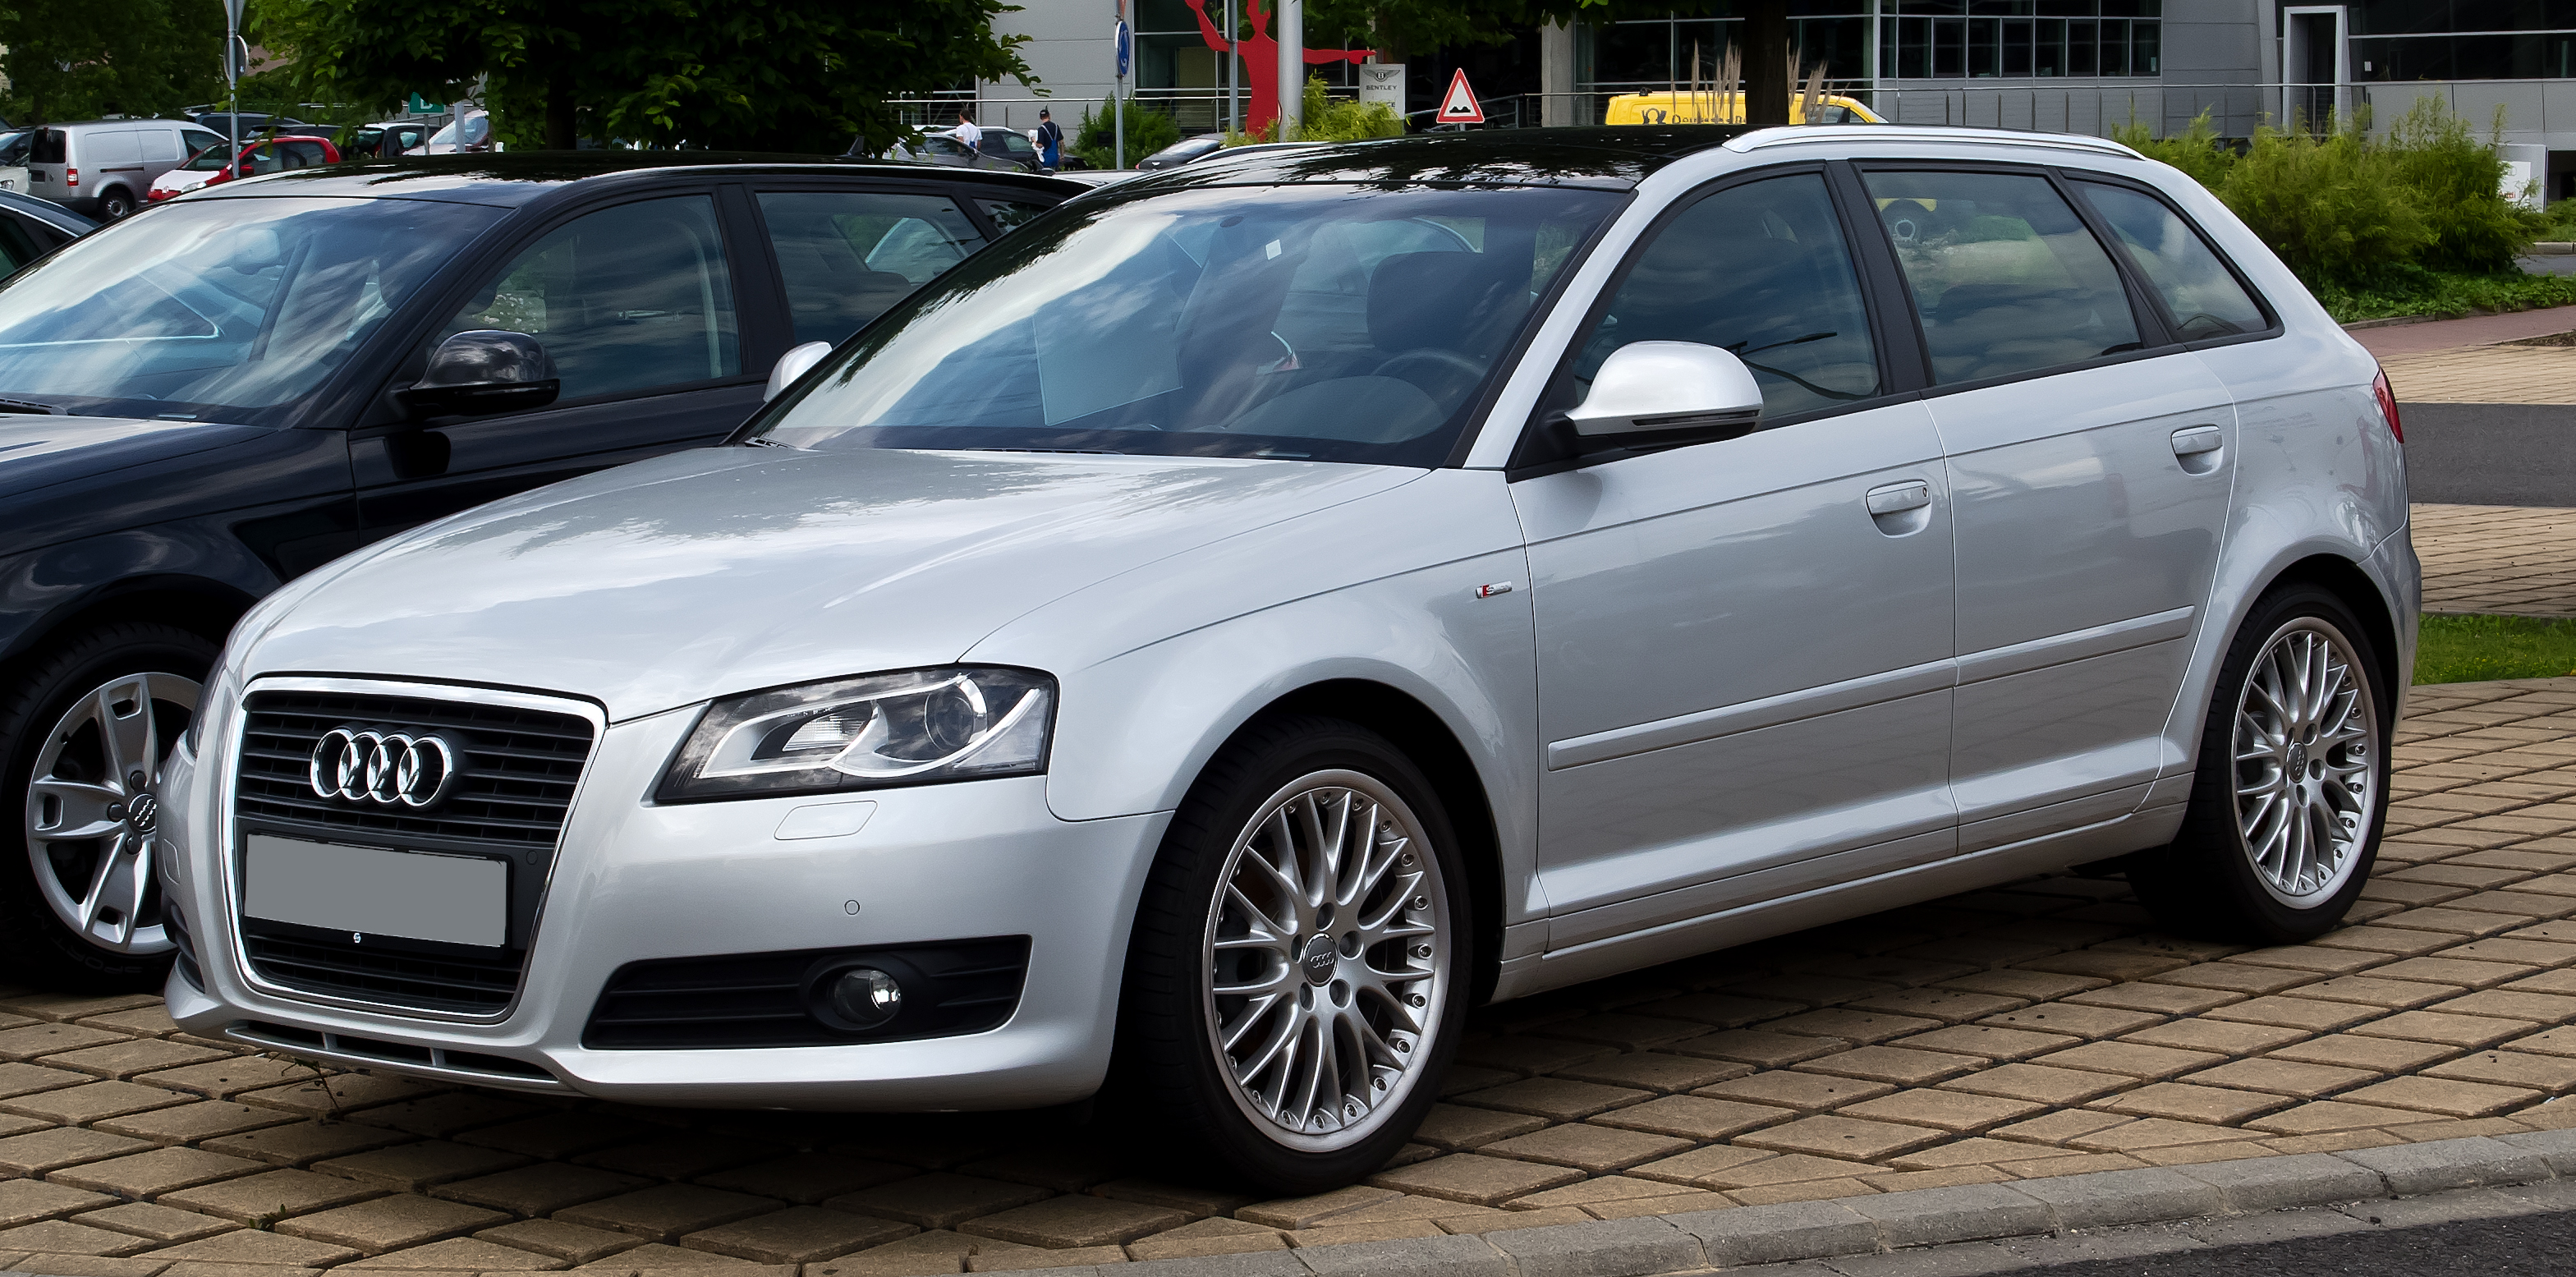 2012 audi a4 tdi usa submited images